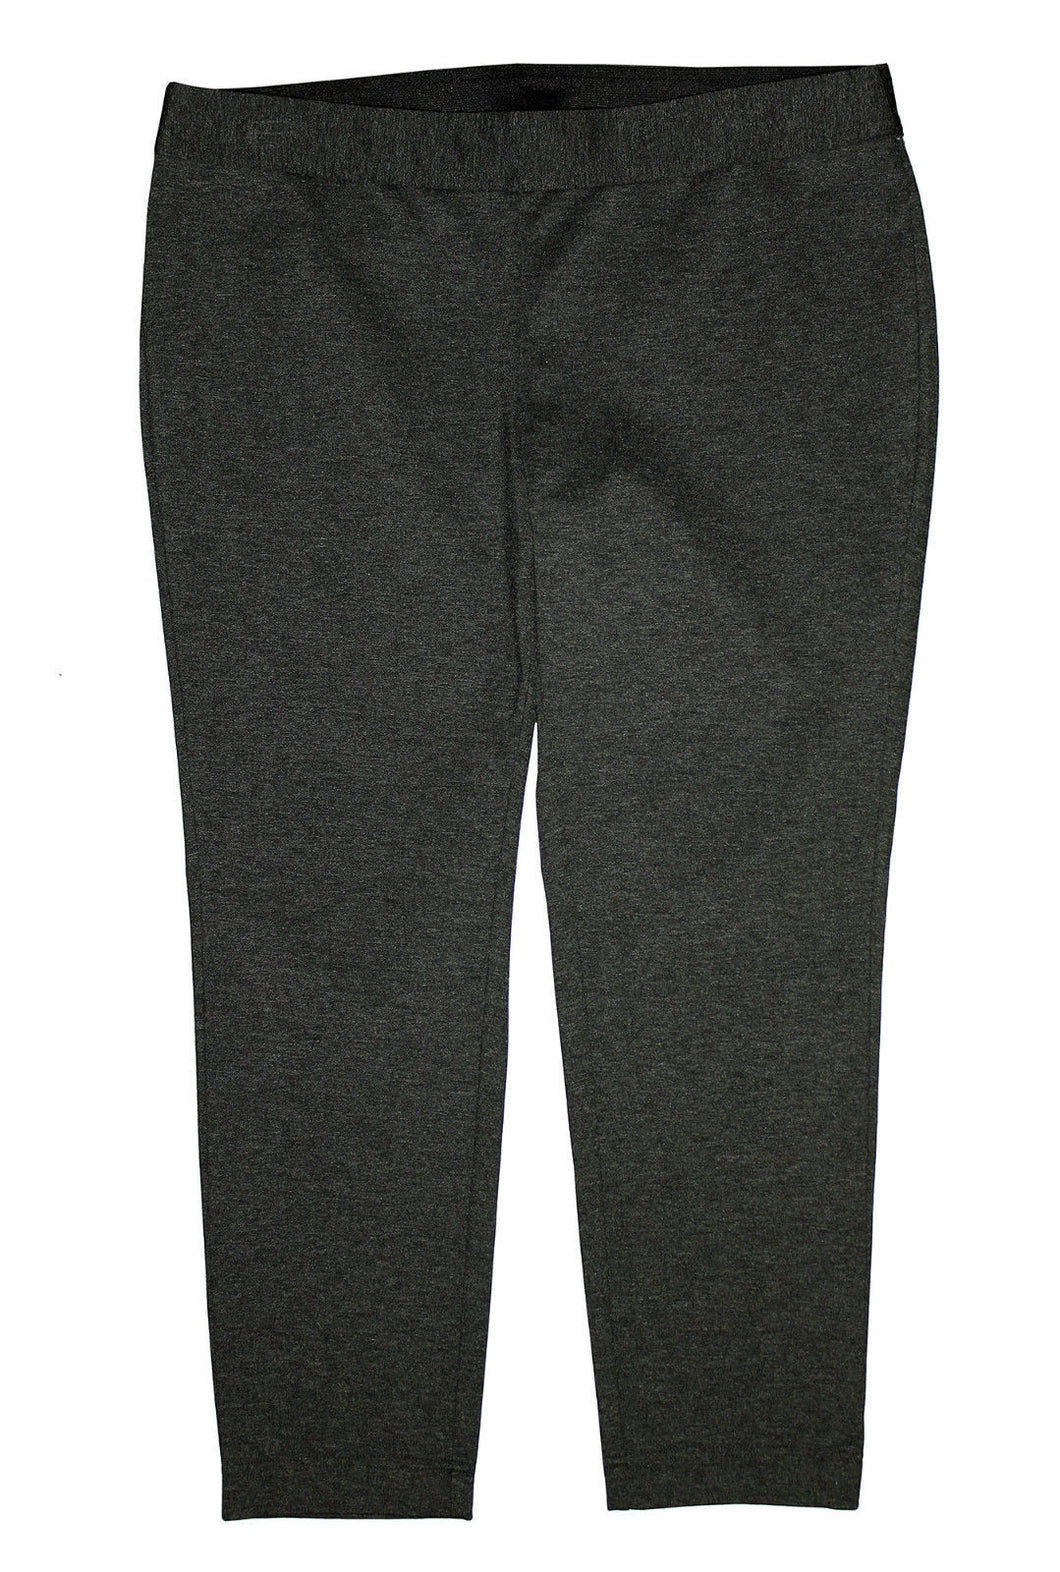 INC Dark Gray Skinny Leg Pull On Casual Pants